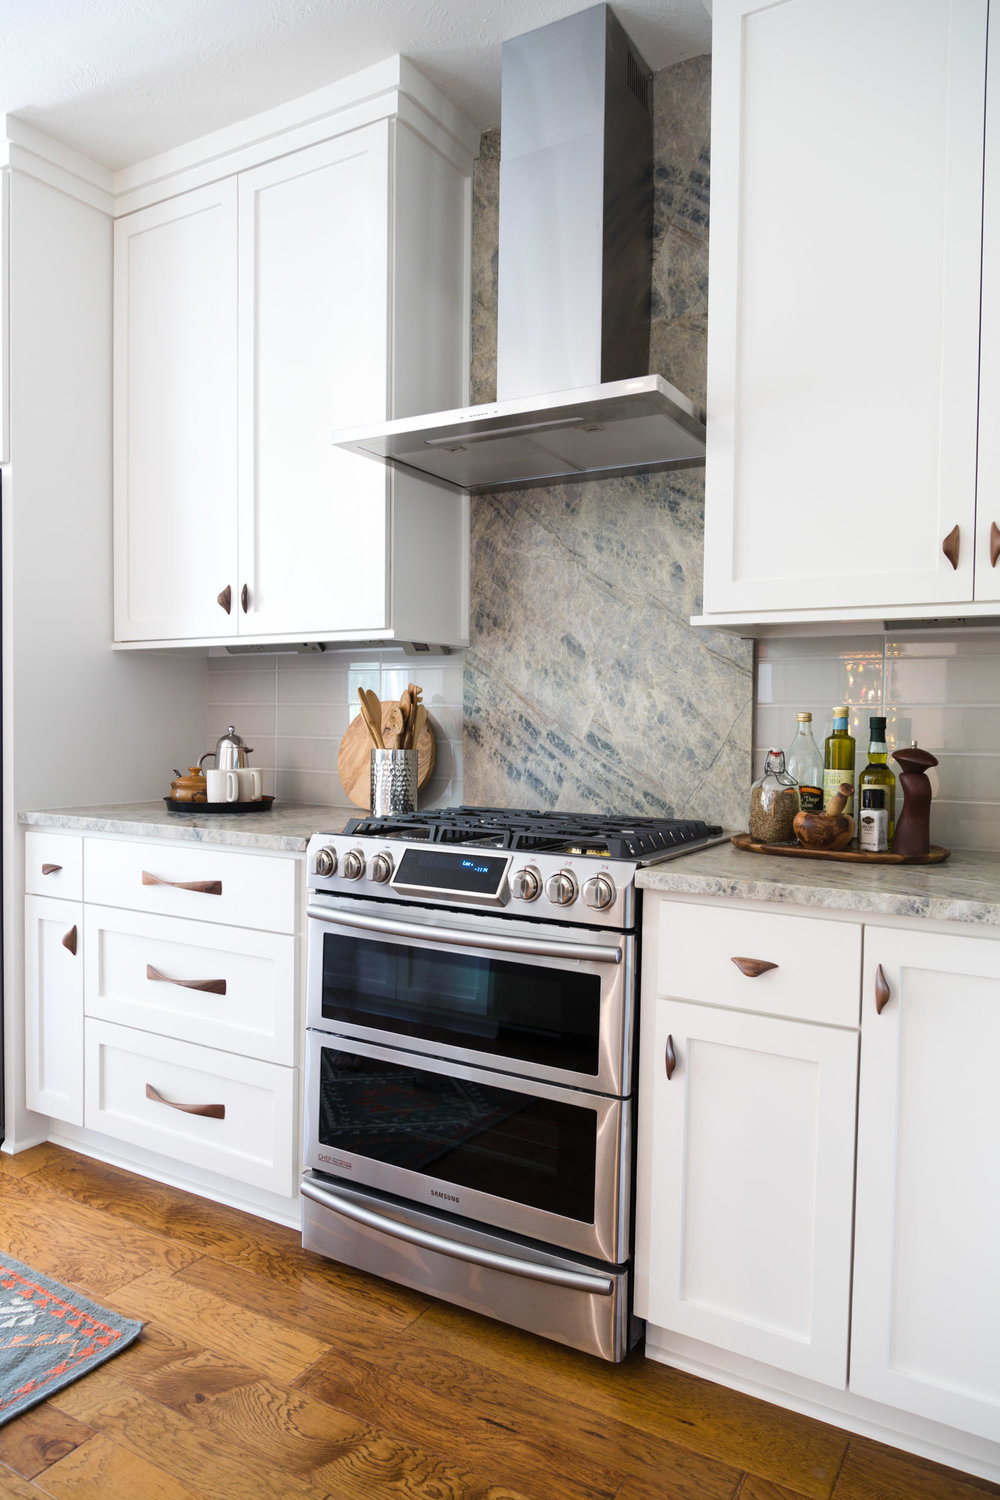 Kitchen remodel with white cabinets, quartzite countertop and splash, wood cabinet pulls, Designer: Carla Aston